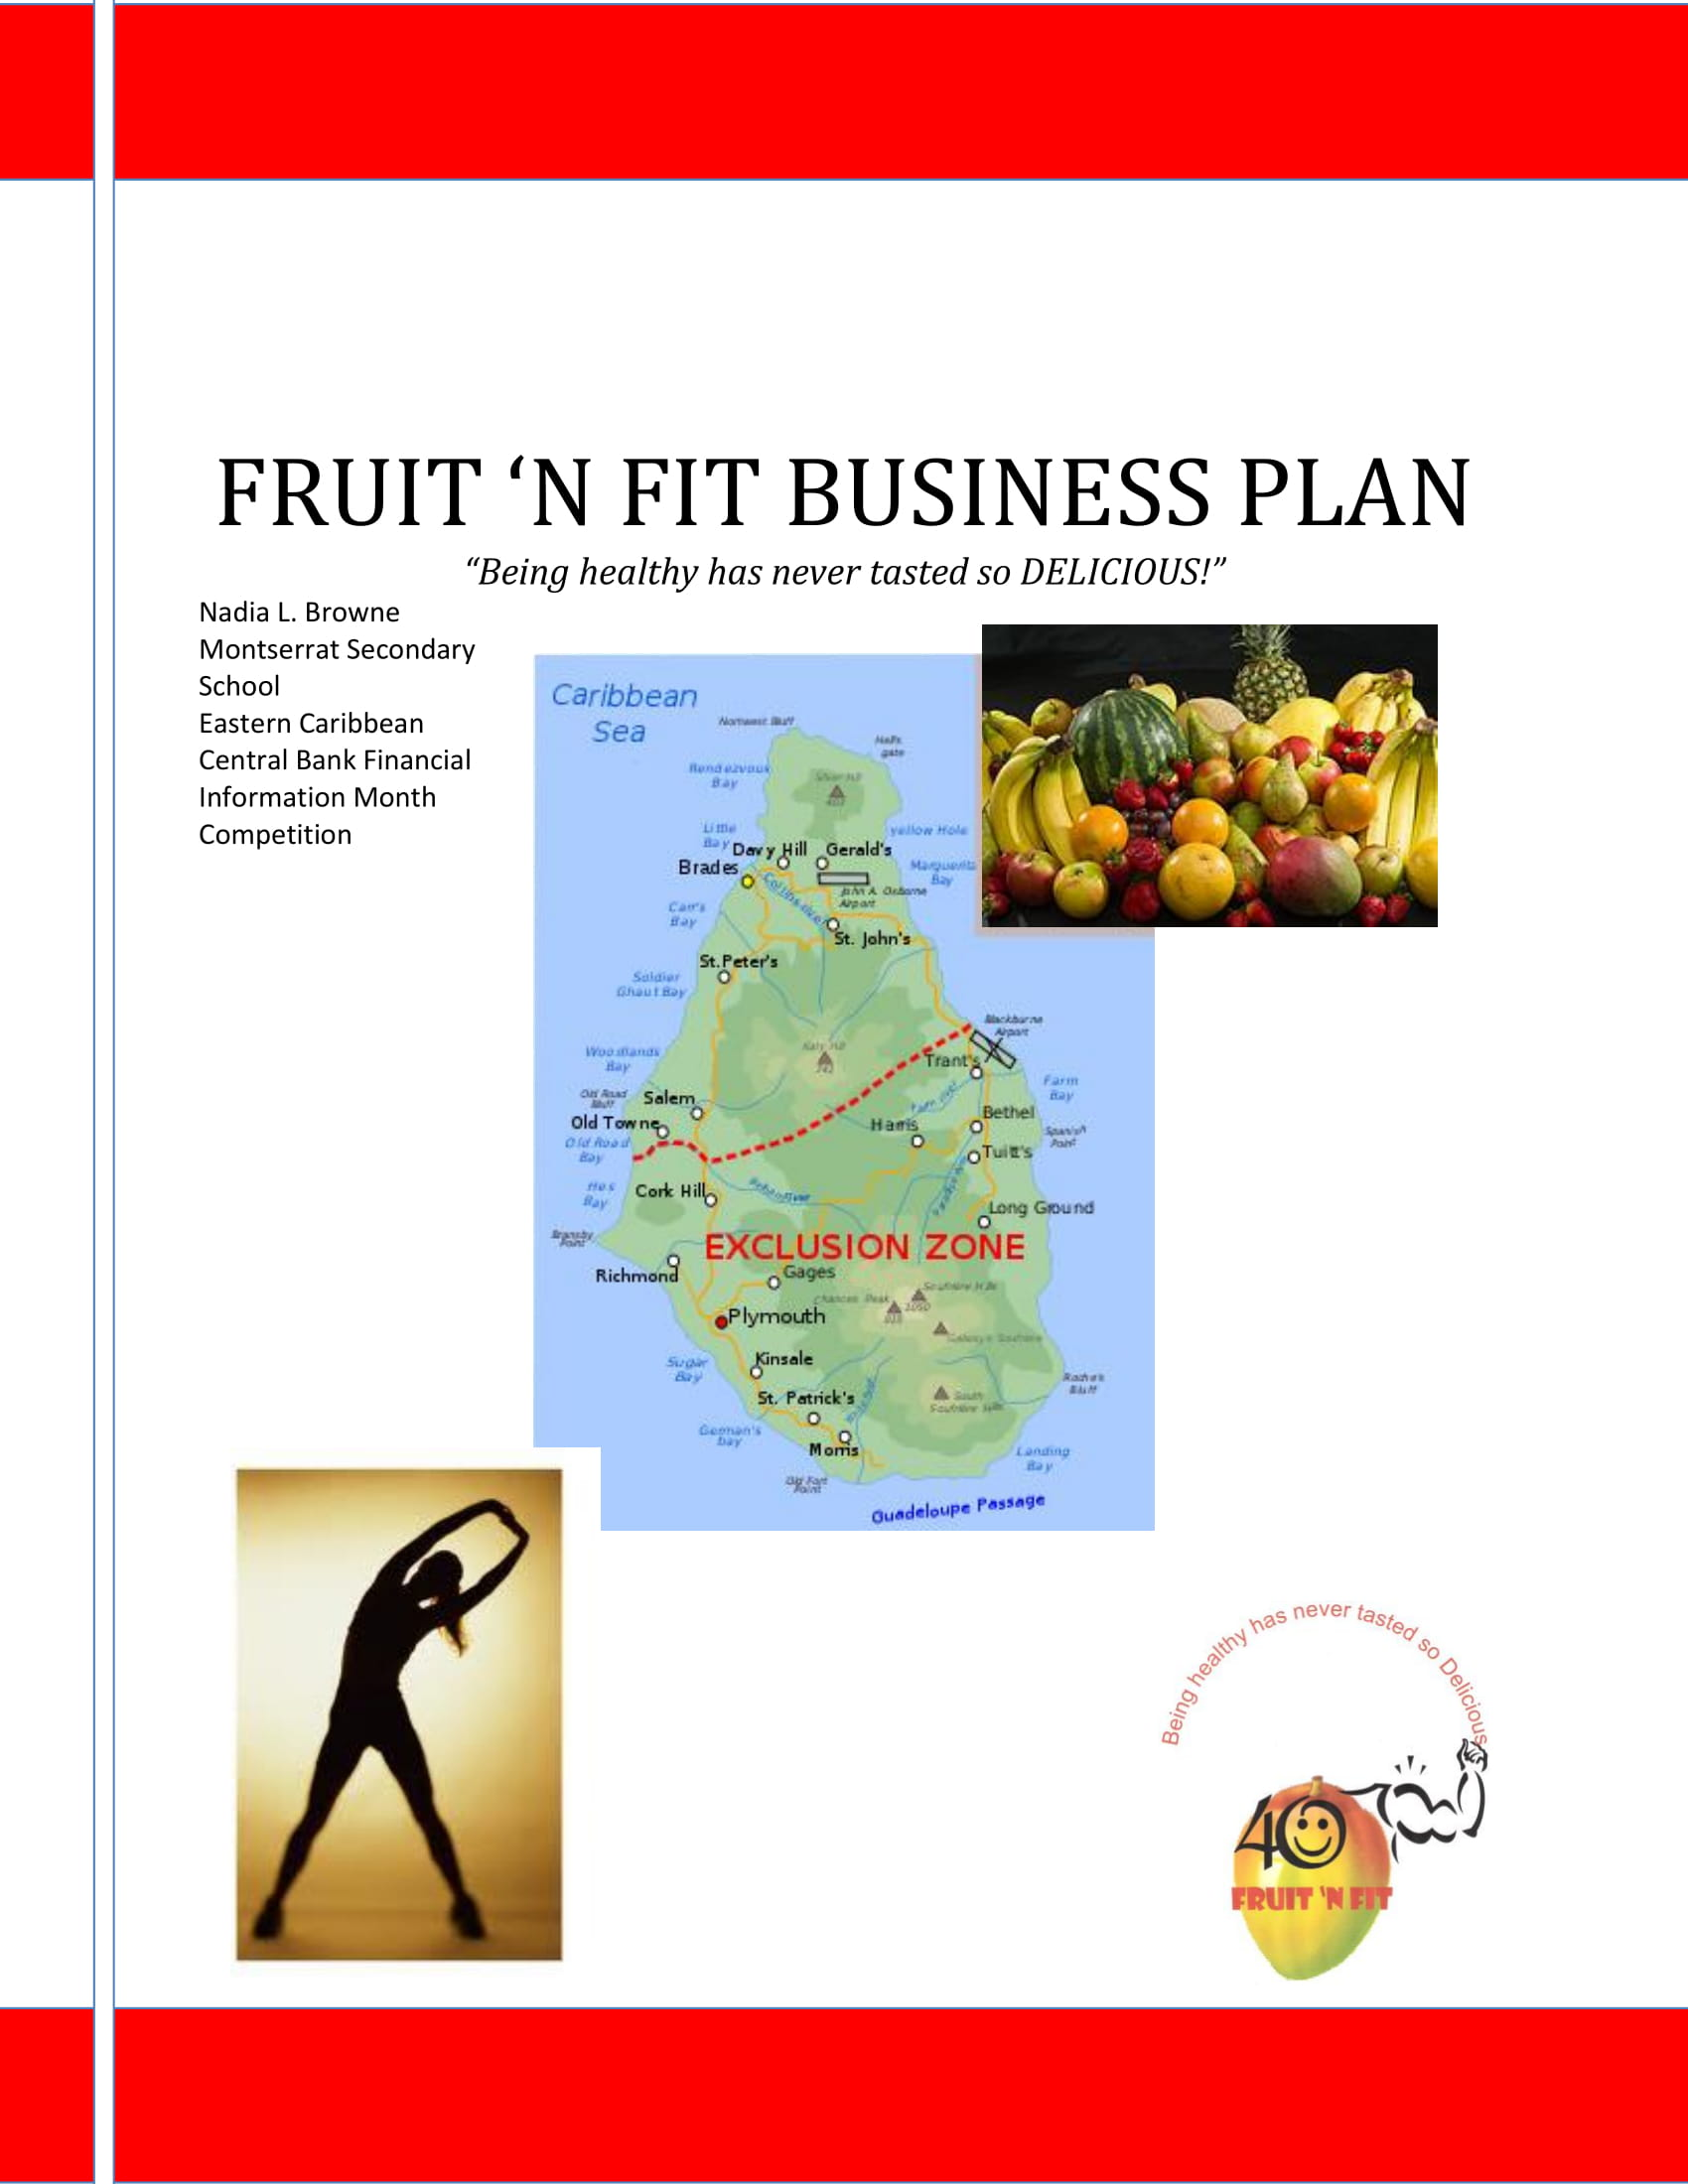 fruit juices and other fruit products business plan 01